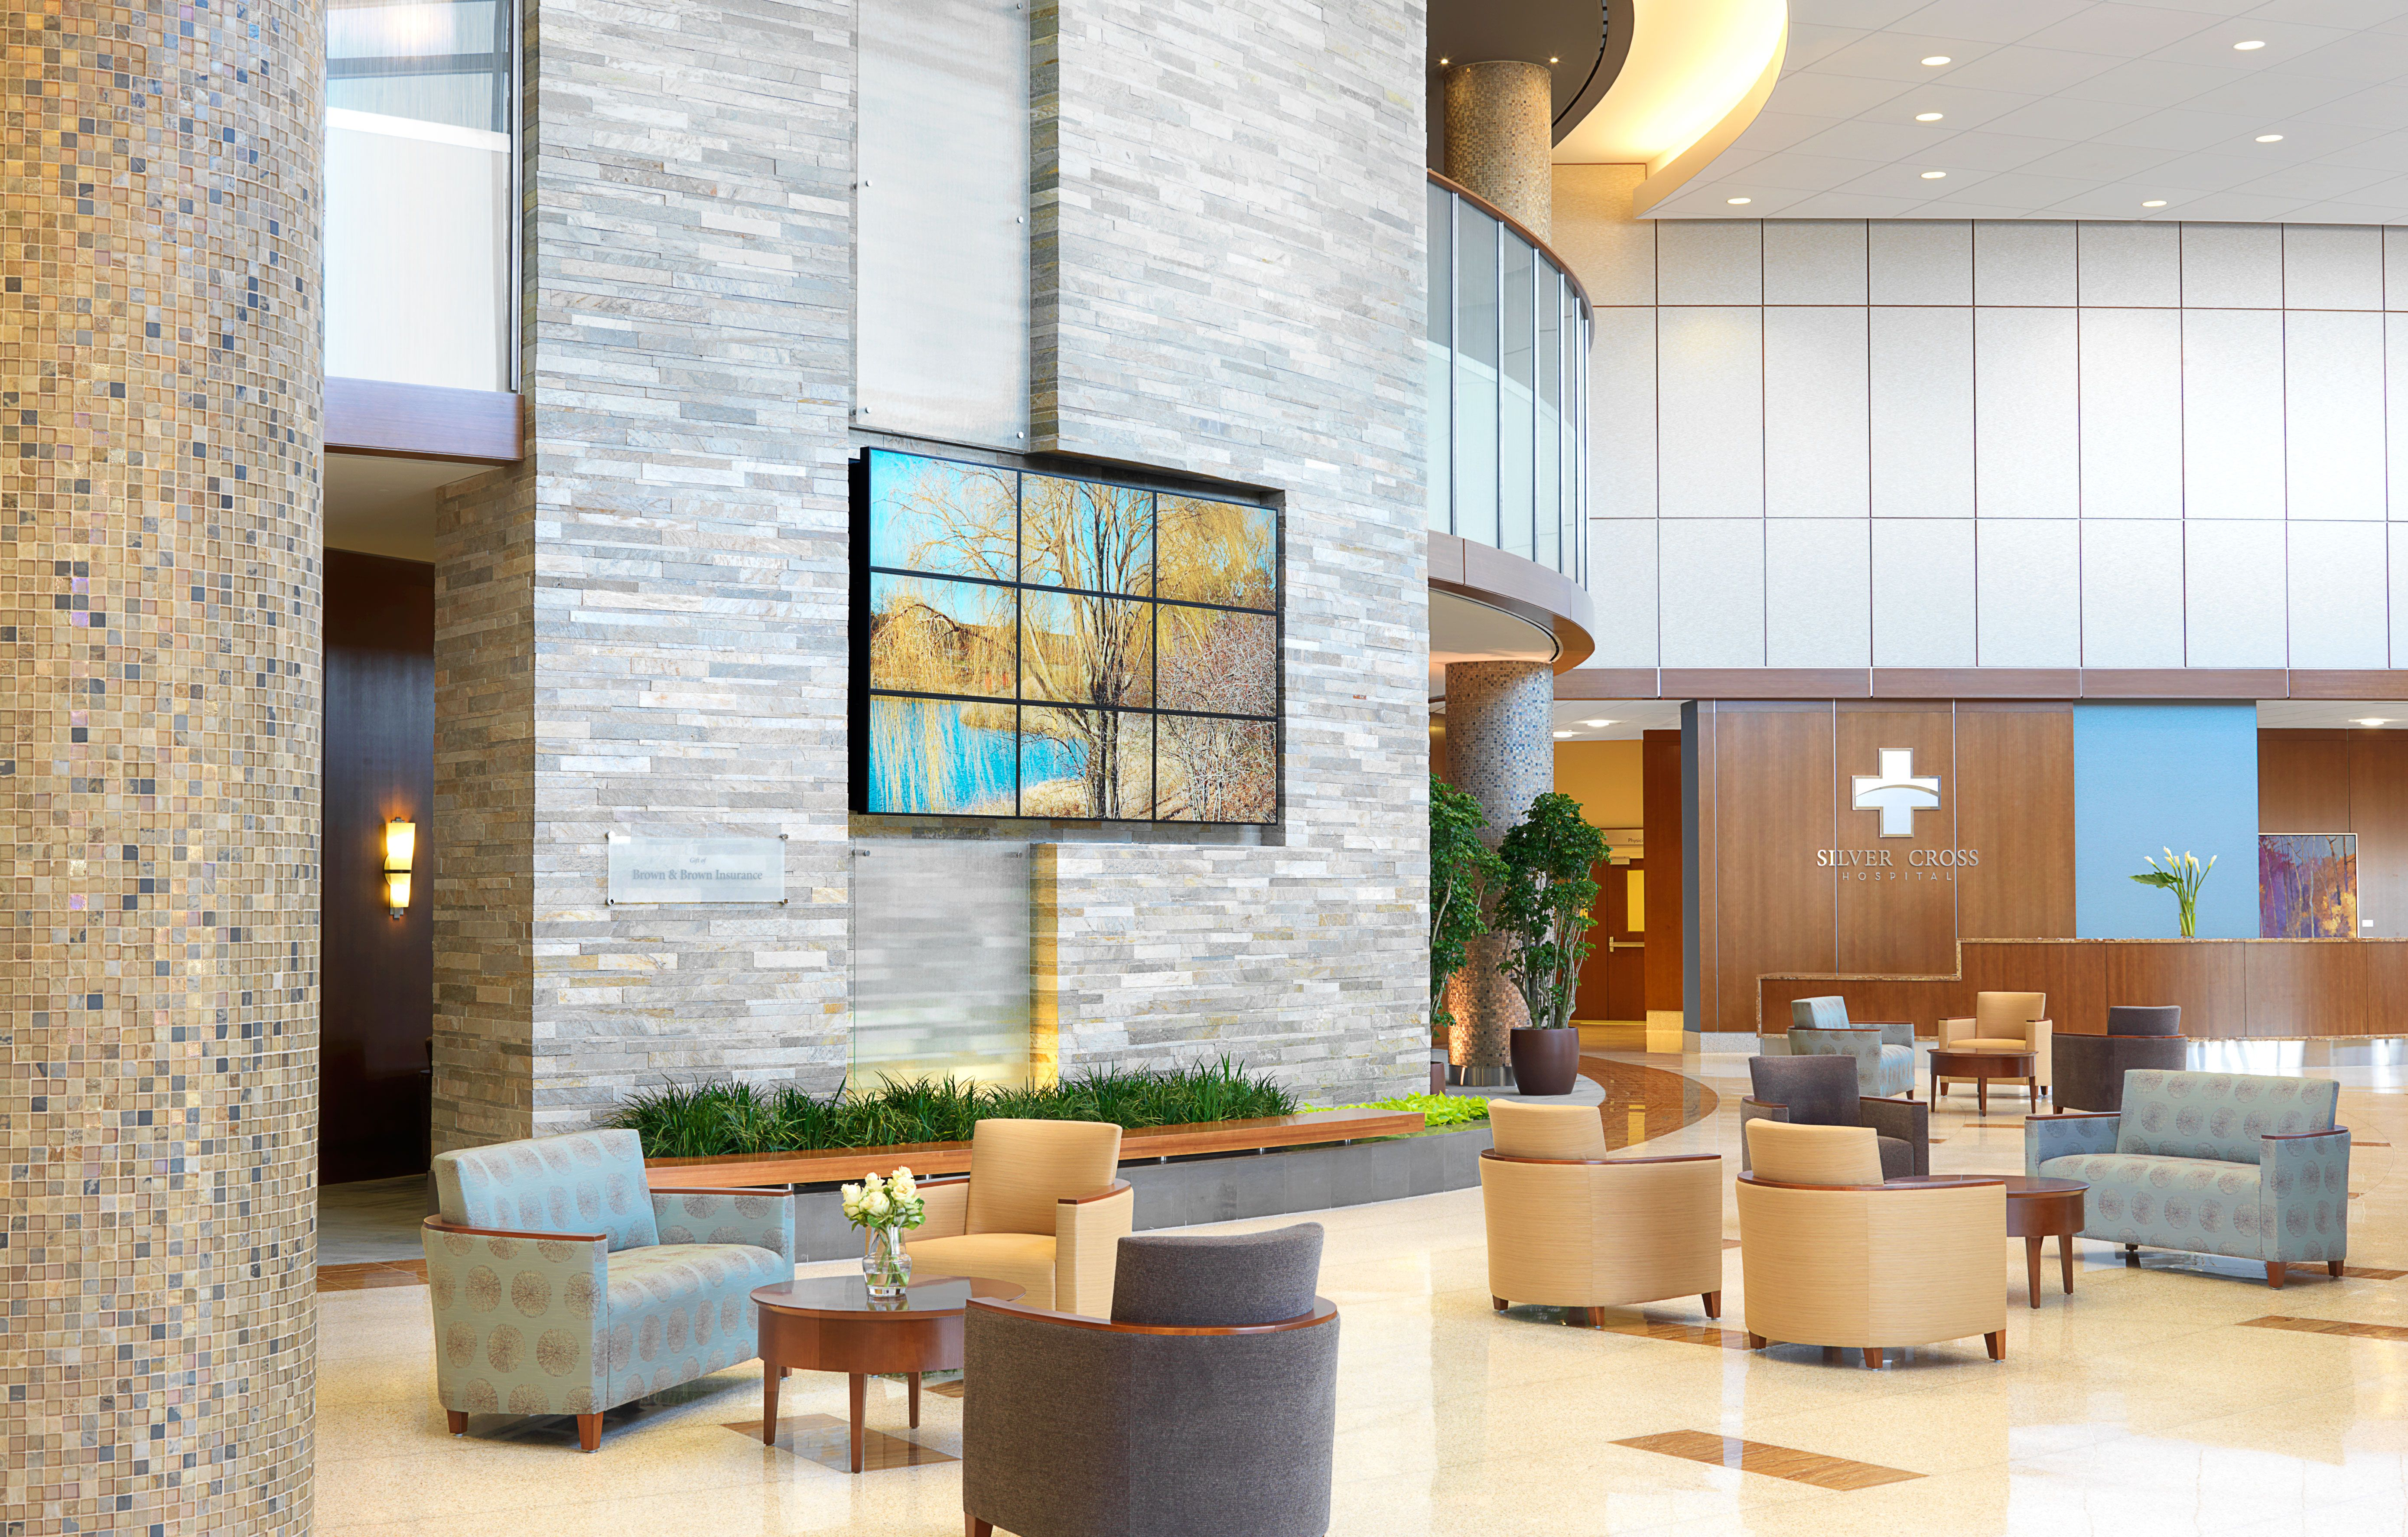 Hospital lobby interior design - Find This Pin And More On Healthcare Interior Design Silver Cross Hospital Lobby